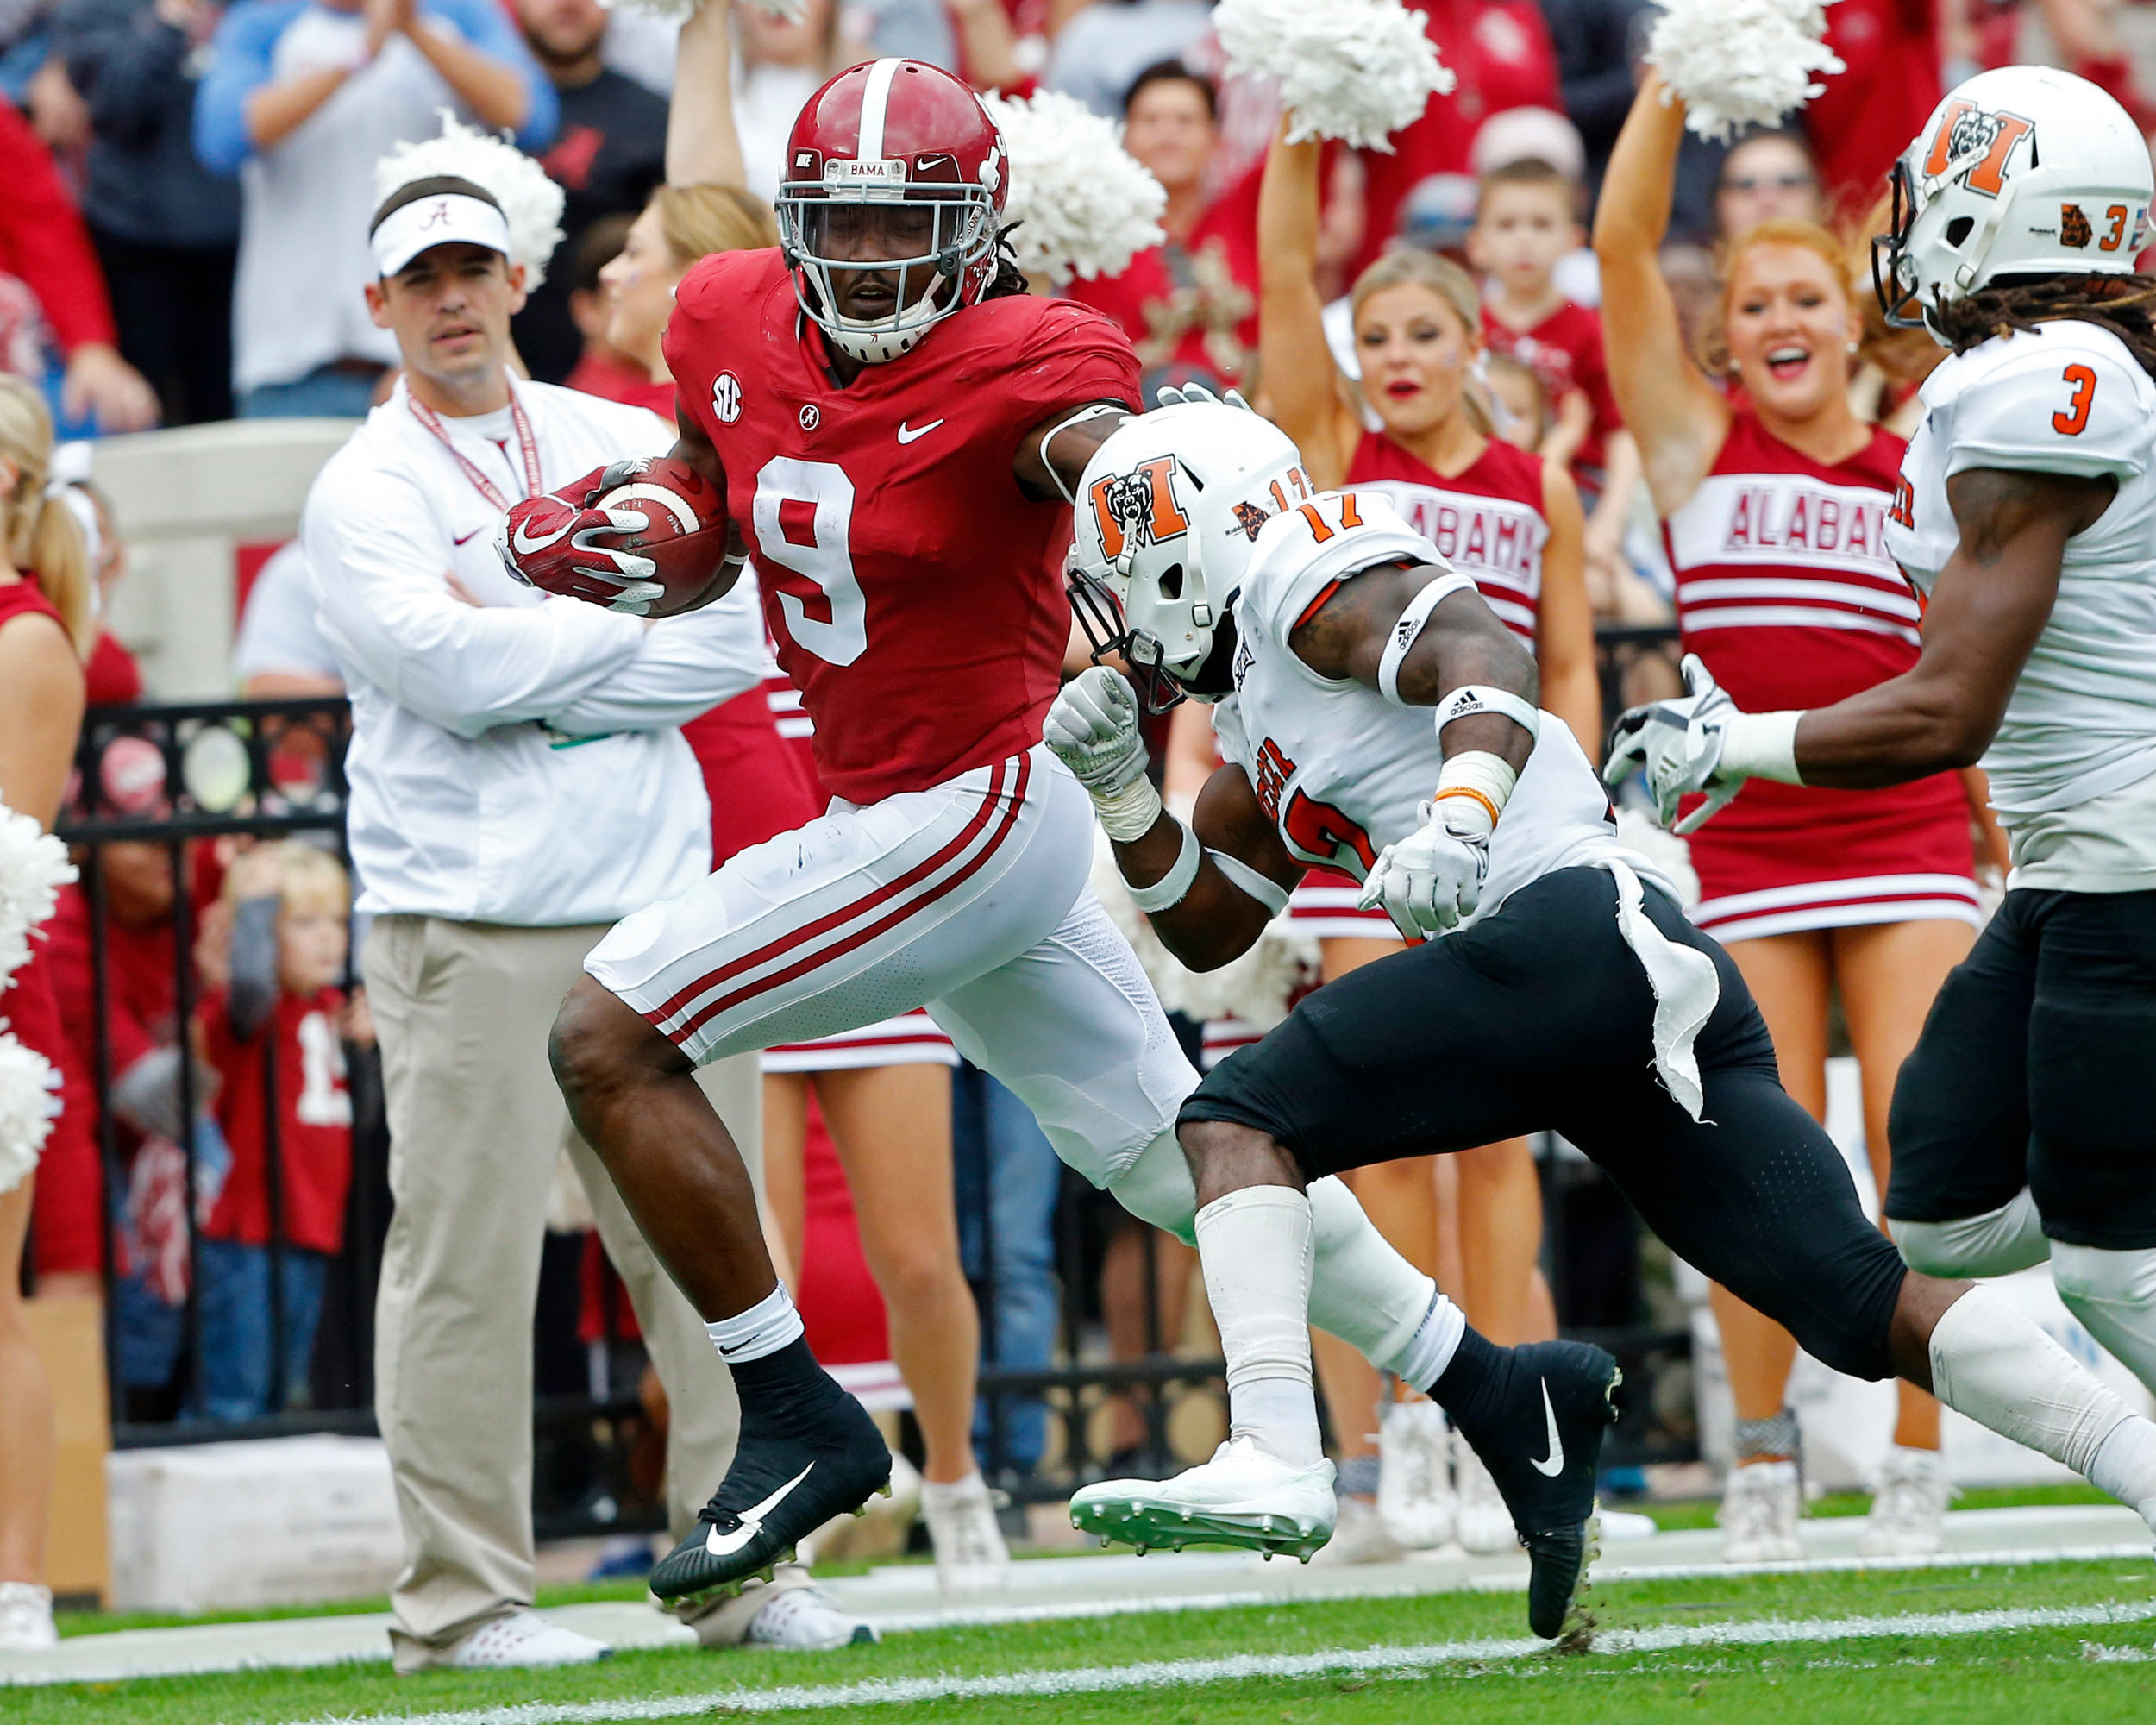 DUPLICATE***Alabama Crimson Tide running back Bo Scarbrough (9) rushes for a big gain during the 1st half of the game between the Mercer Bears and the University of Alabama Crimson Tide at Bryant-Denny Stadium in Tuscaloosa, Al on 11/18/2017.